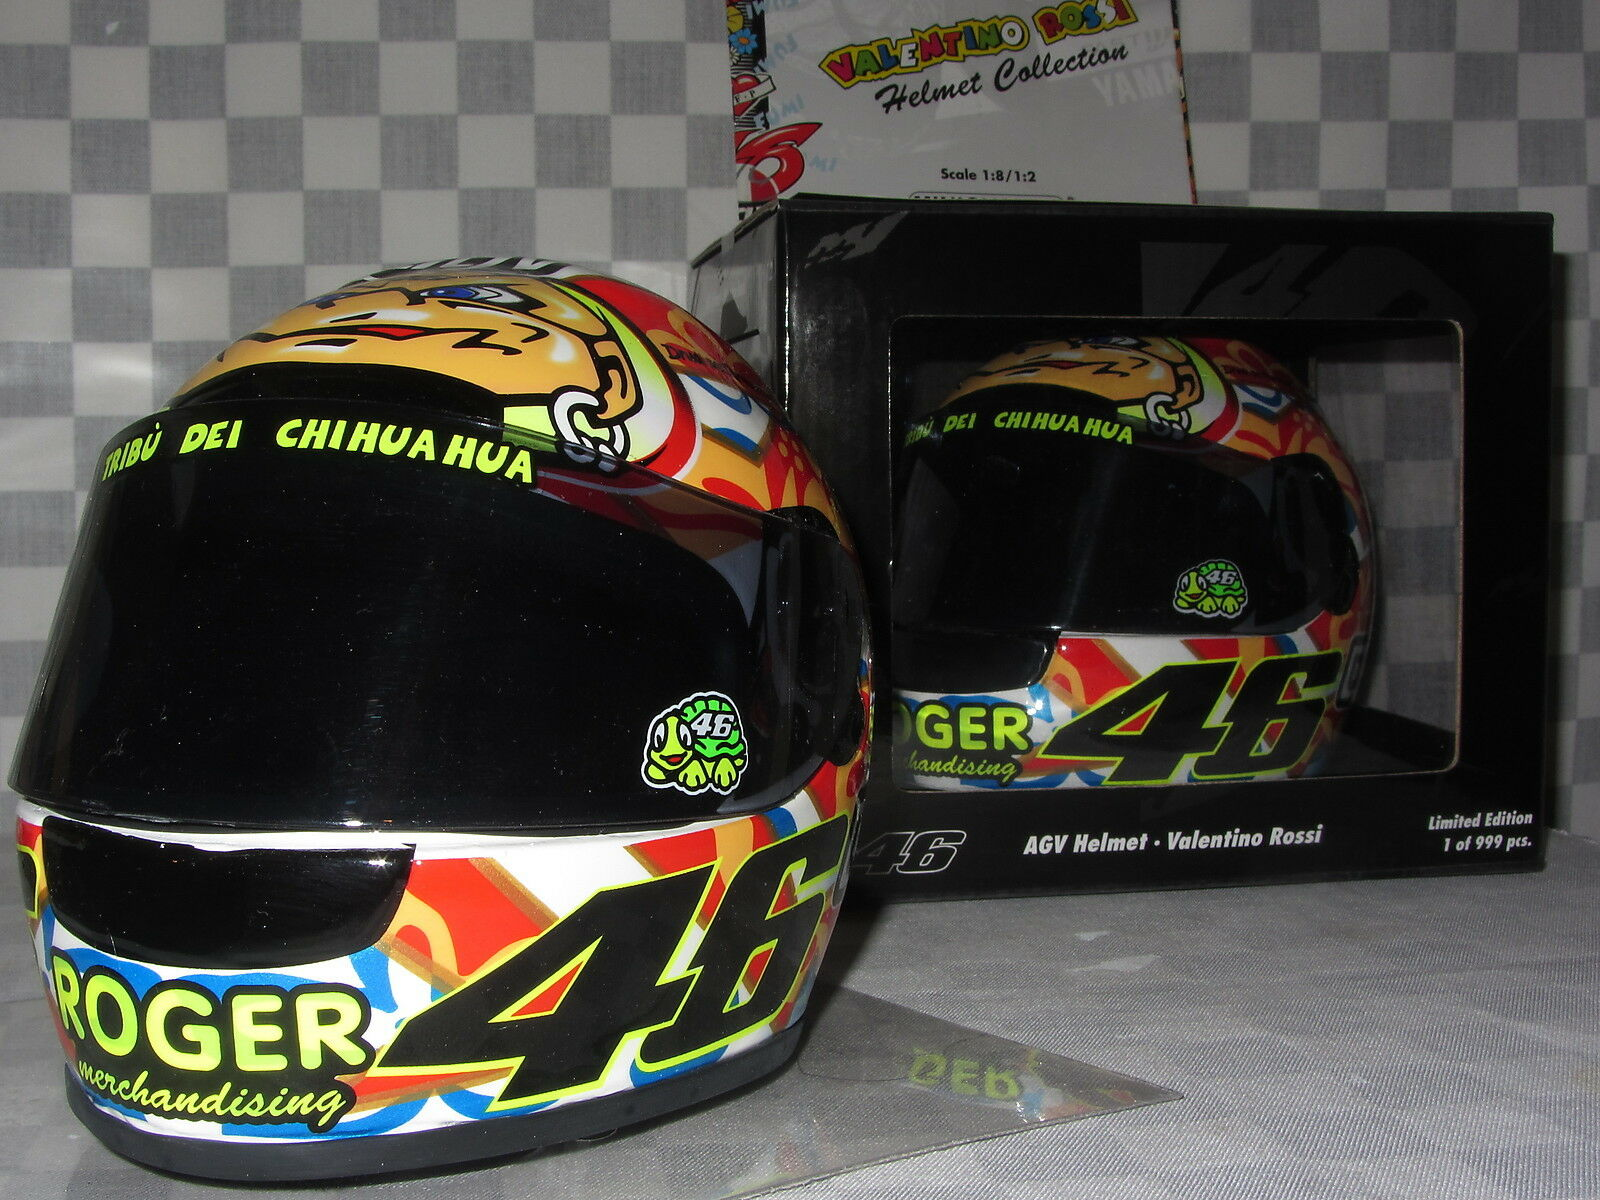 1 2 MINICHAMPS AGV AGV AGV HELLMET ROSSI GP 500 MUGELLO 2001 LTD EDITION 372 010076 468576